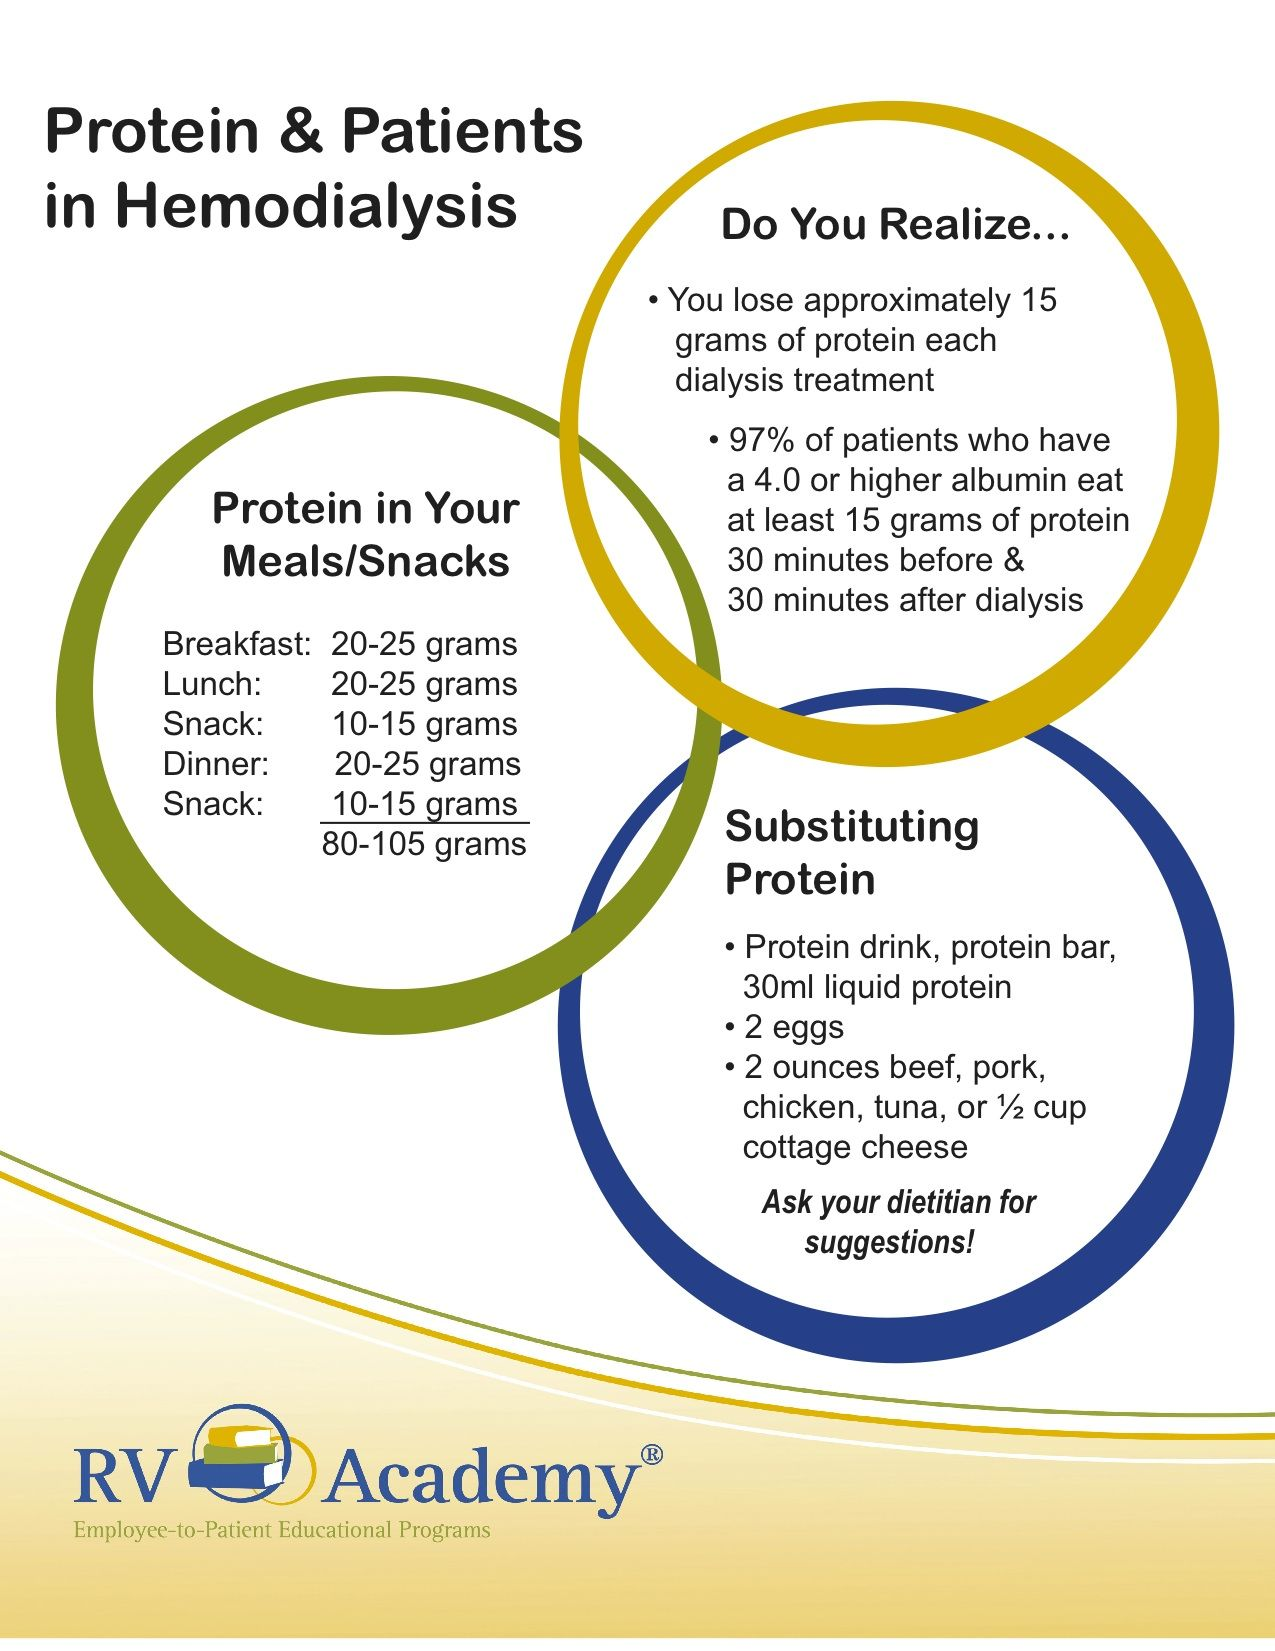 Protein Information For Patients In Hemodialysis